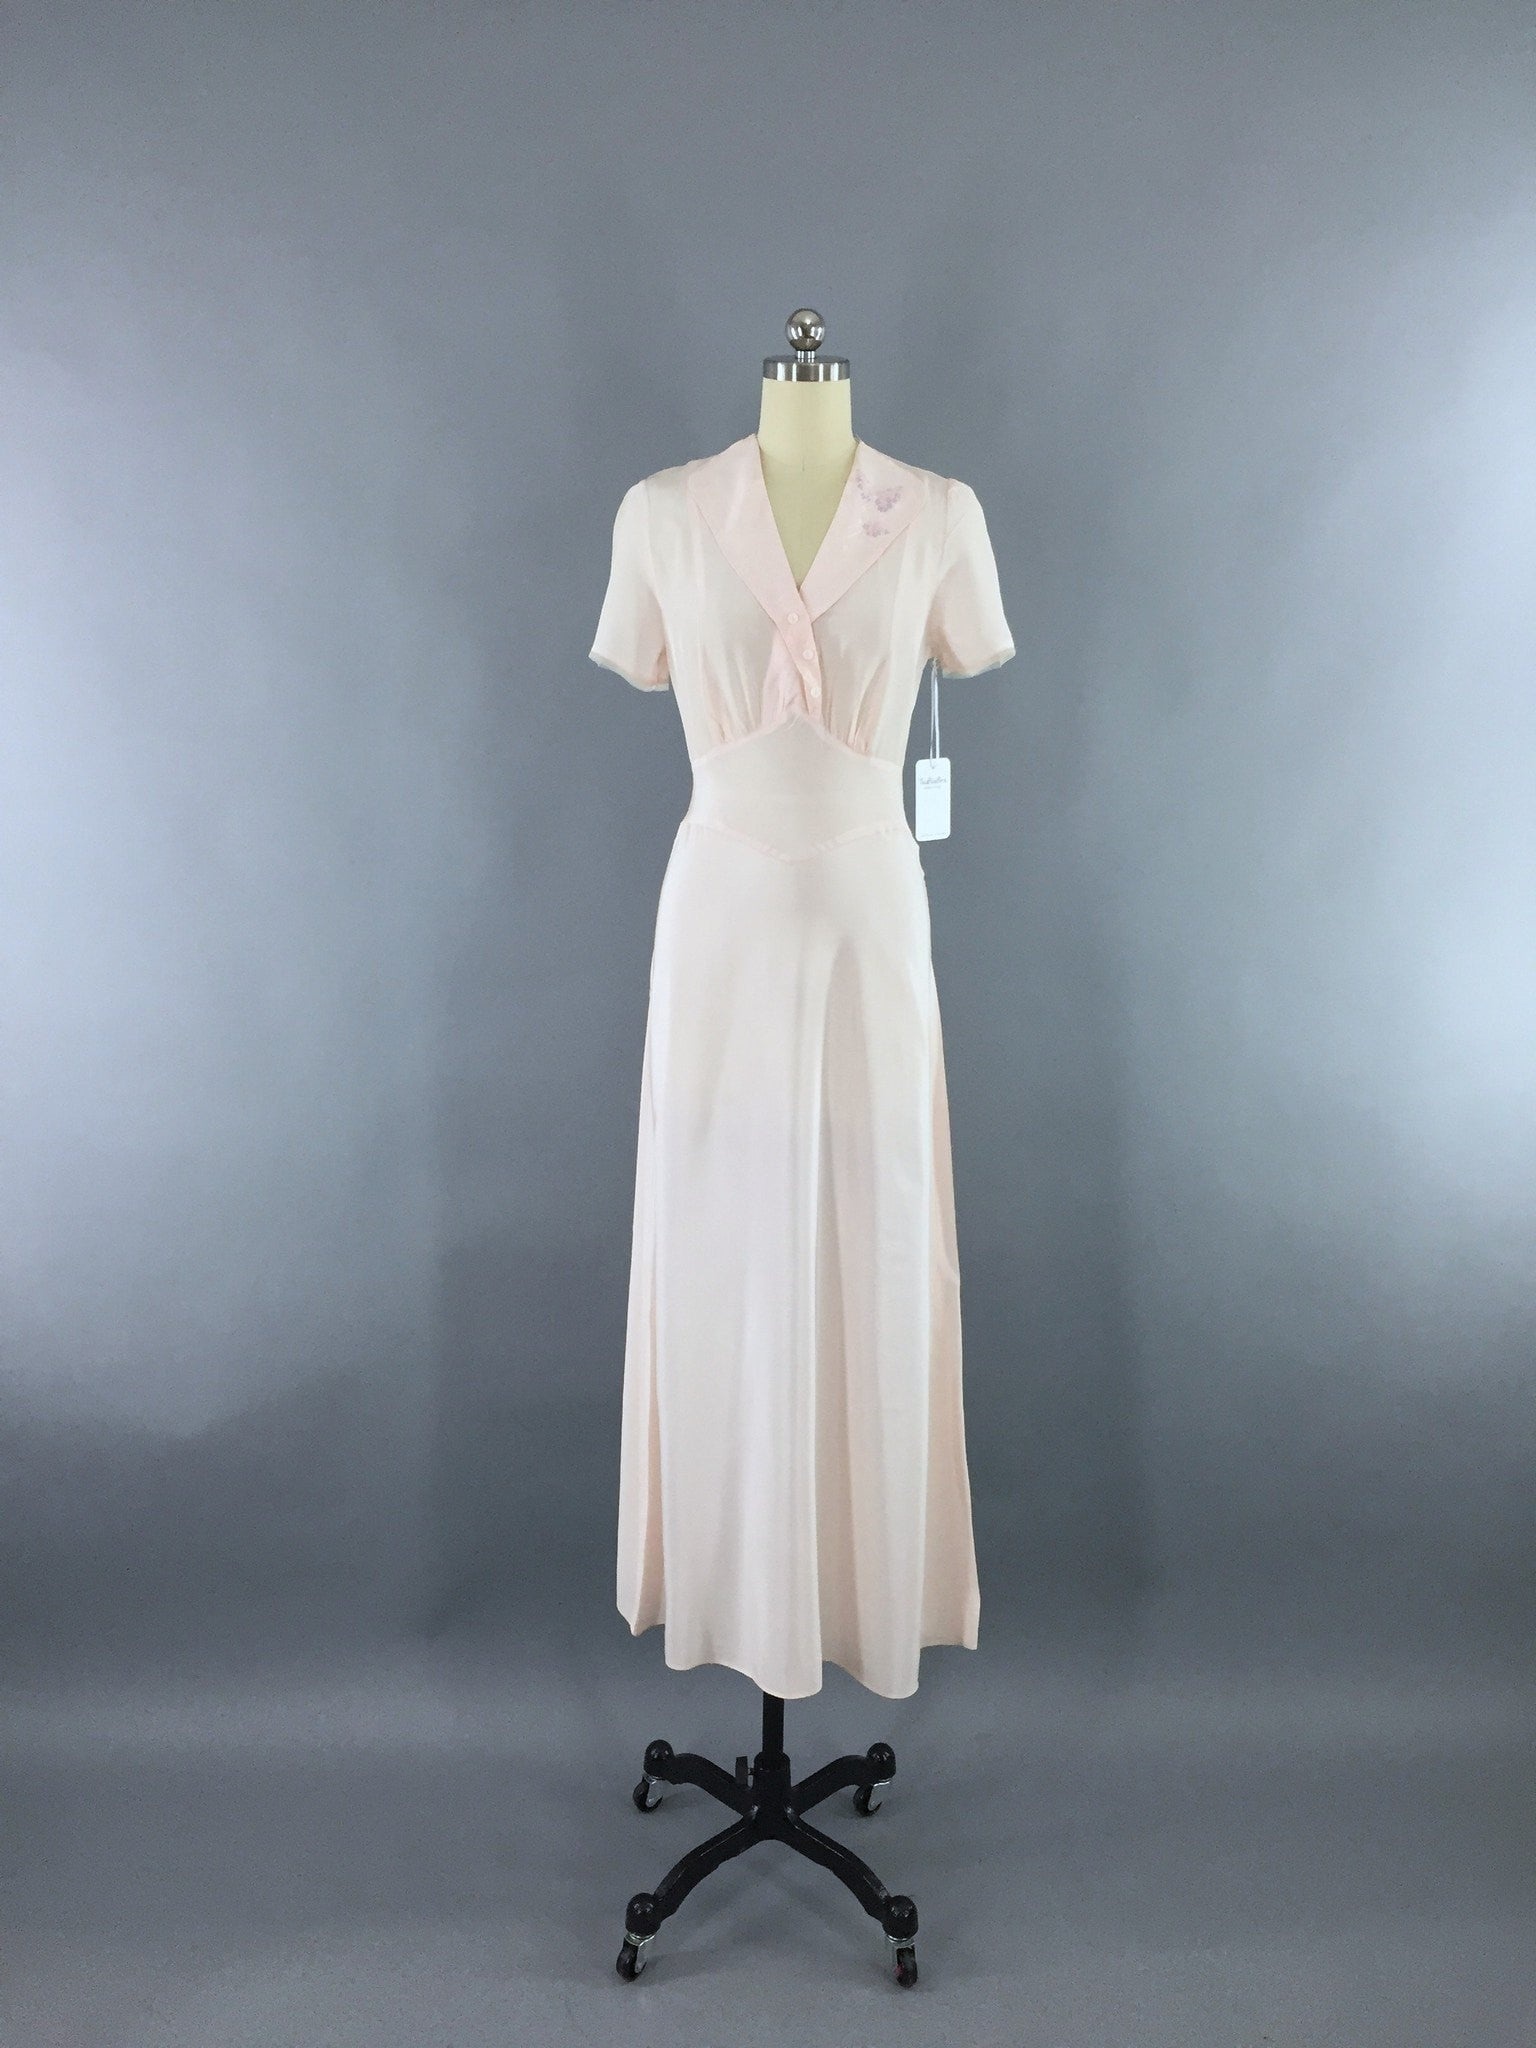 Vintage 1930s Artemis Bias Cut Pink Embroidered Rayon Crepe Nightgown Lingerie ThisBlueBird